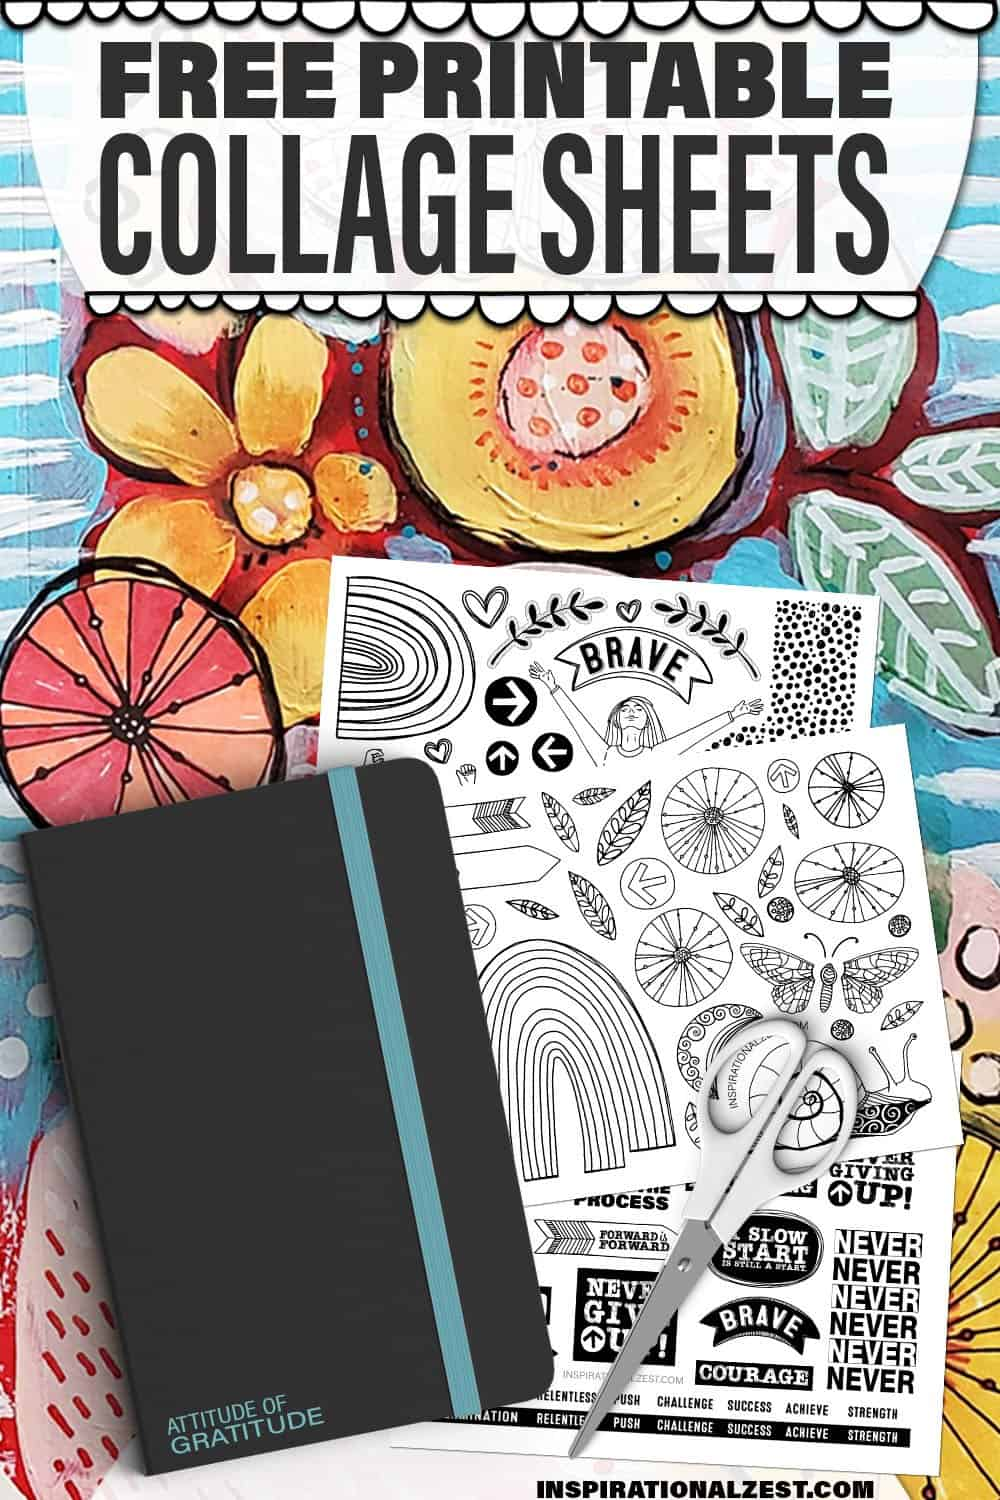 Free Printable Word Art & Illustrations for Art Journals & Collage